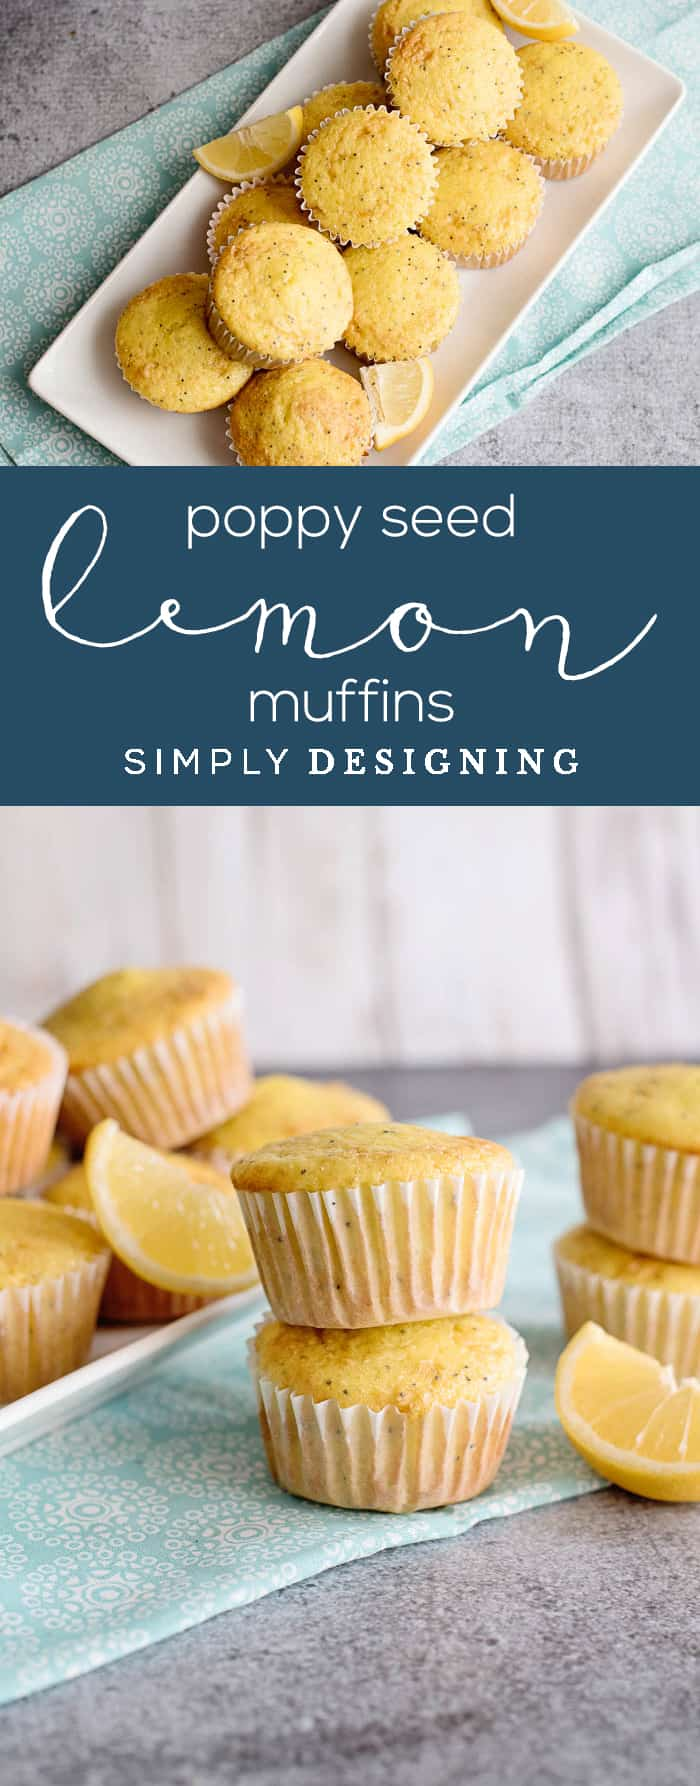 Lemon Muffins with Poppy Seeds - an easy and delicious recipe